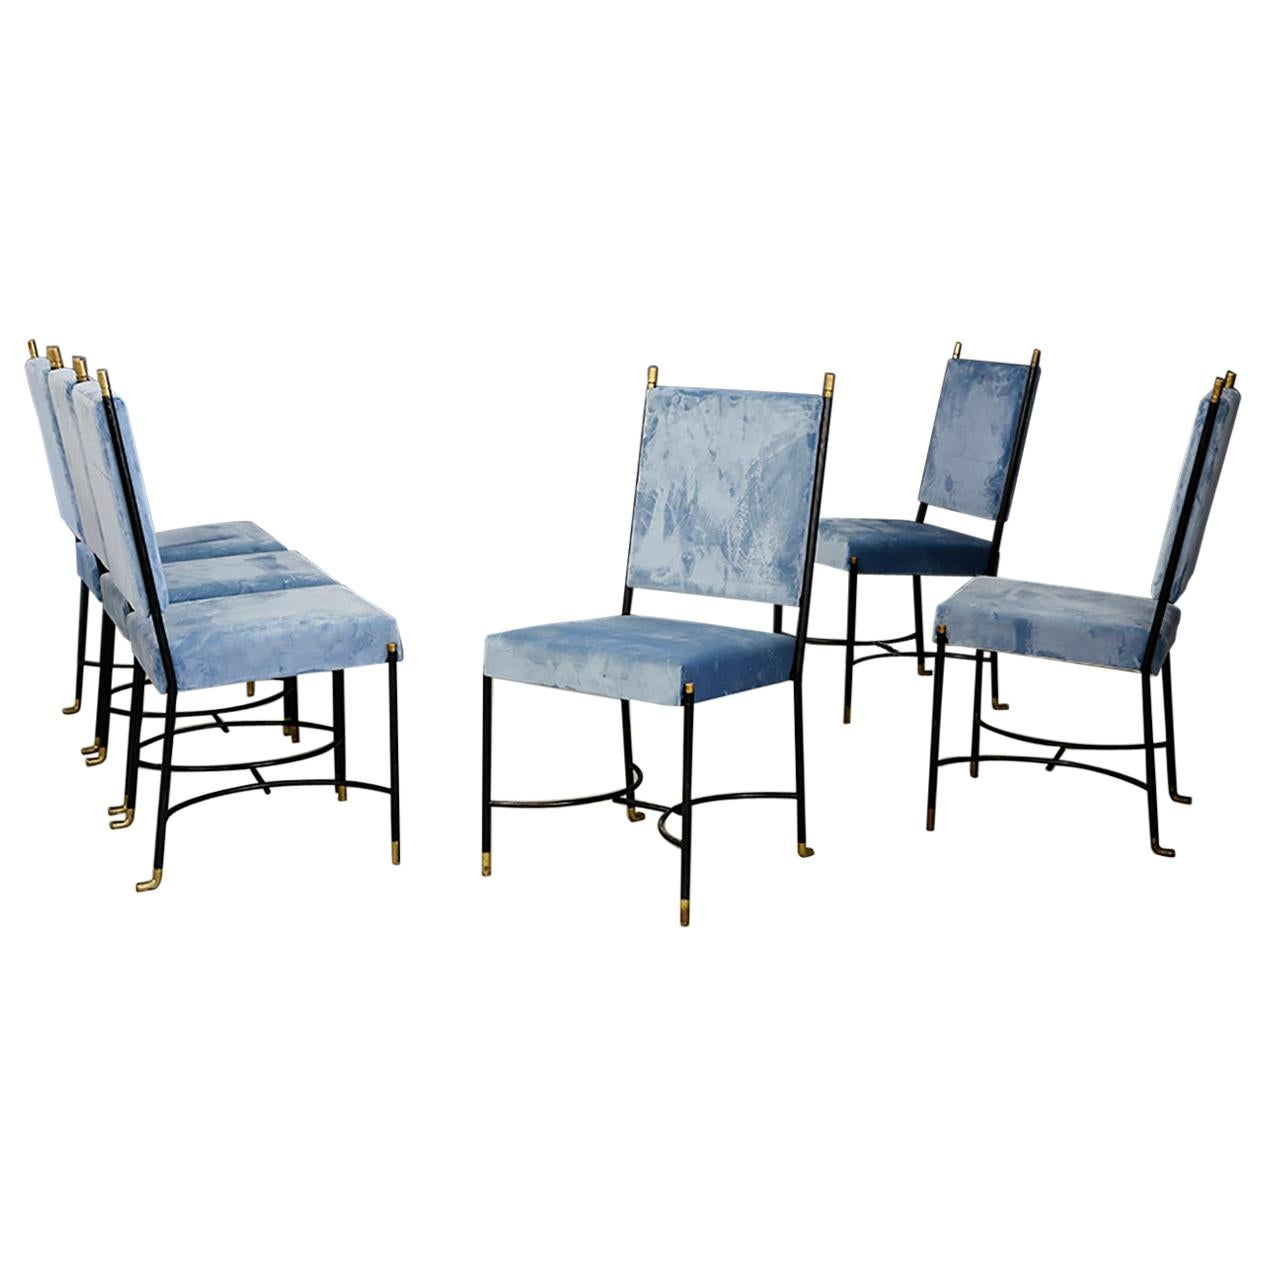 Set of Six Midcentury Iron Chair Blue and Brass by Bertrand, Paris, 1950s